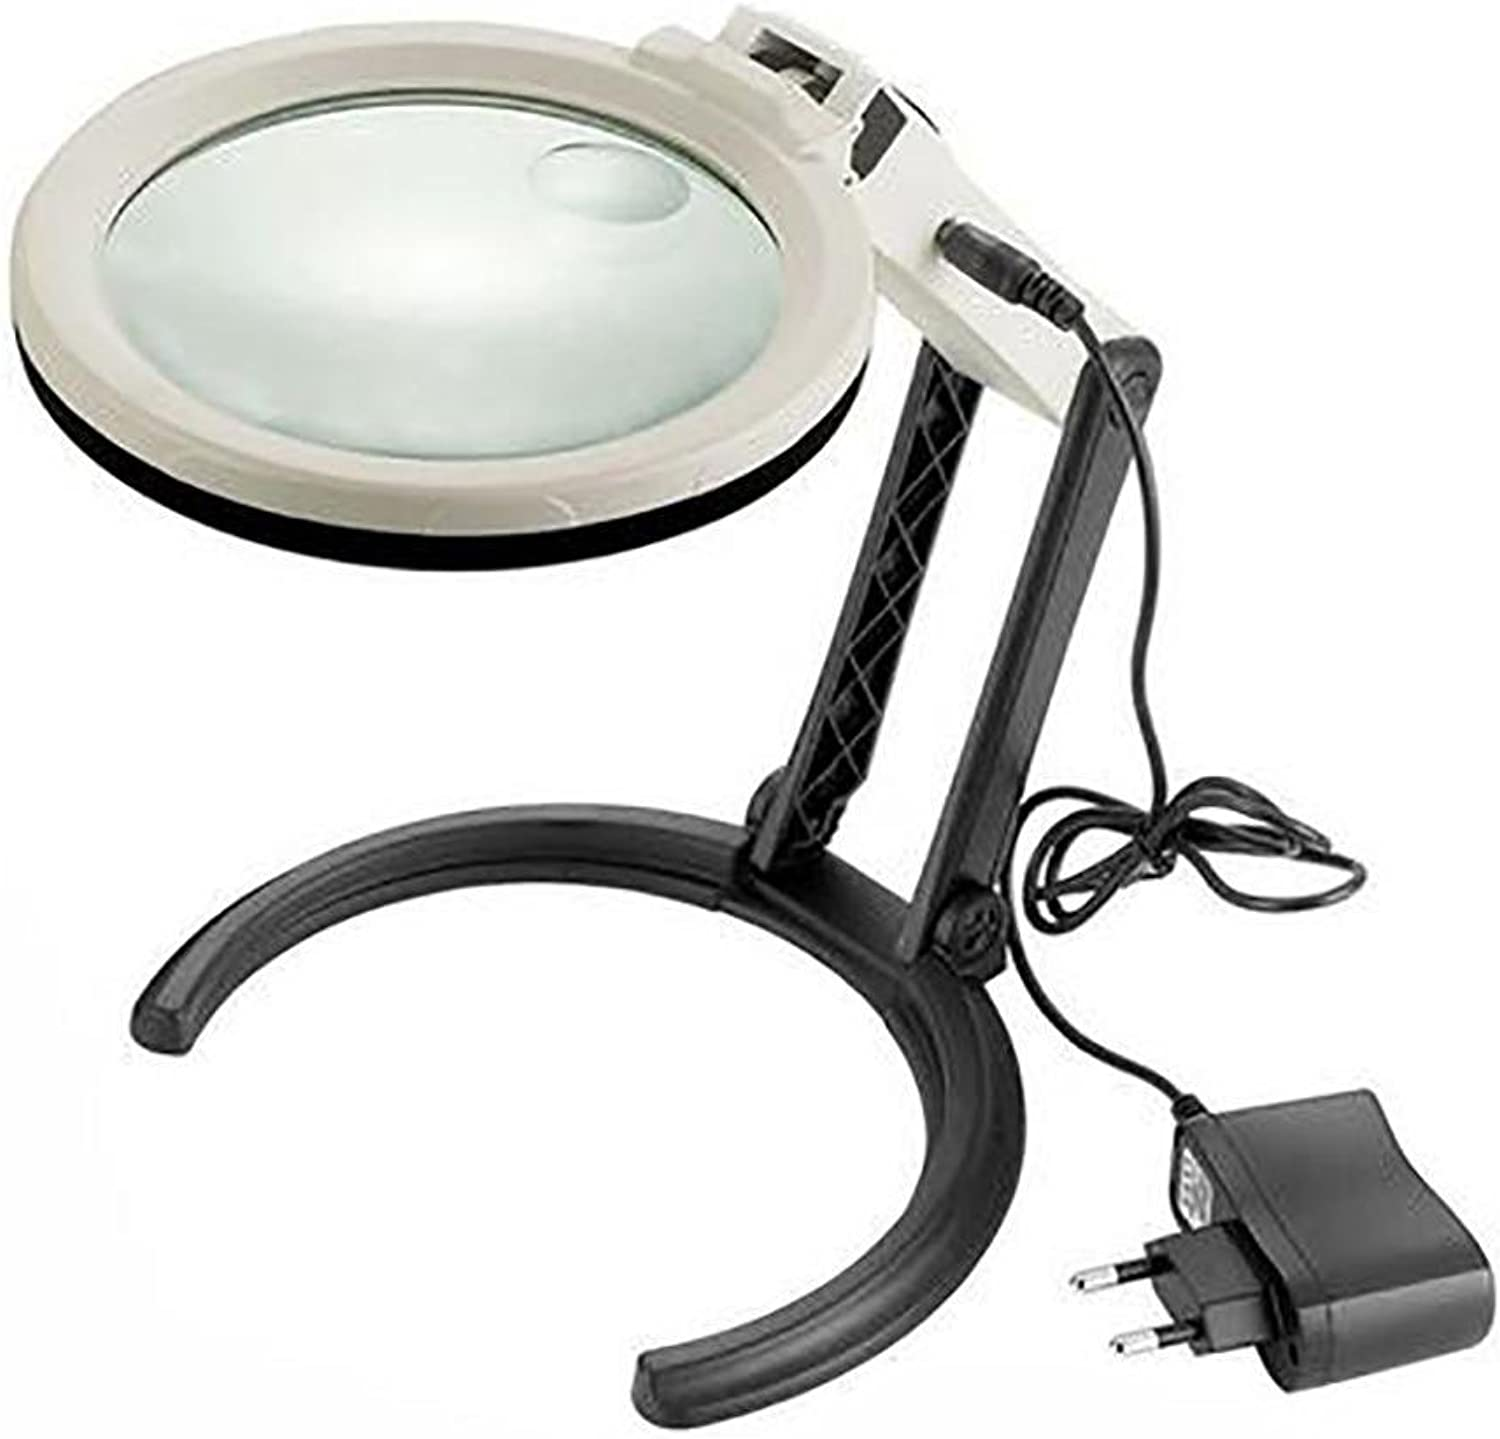 LL-2X 5X 120mm Lens Magnifying Glass with 10 LED Lights Hands Illuminated Magnifier